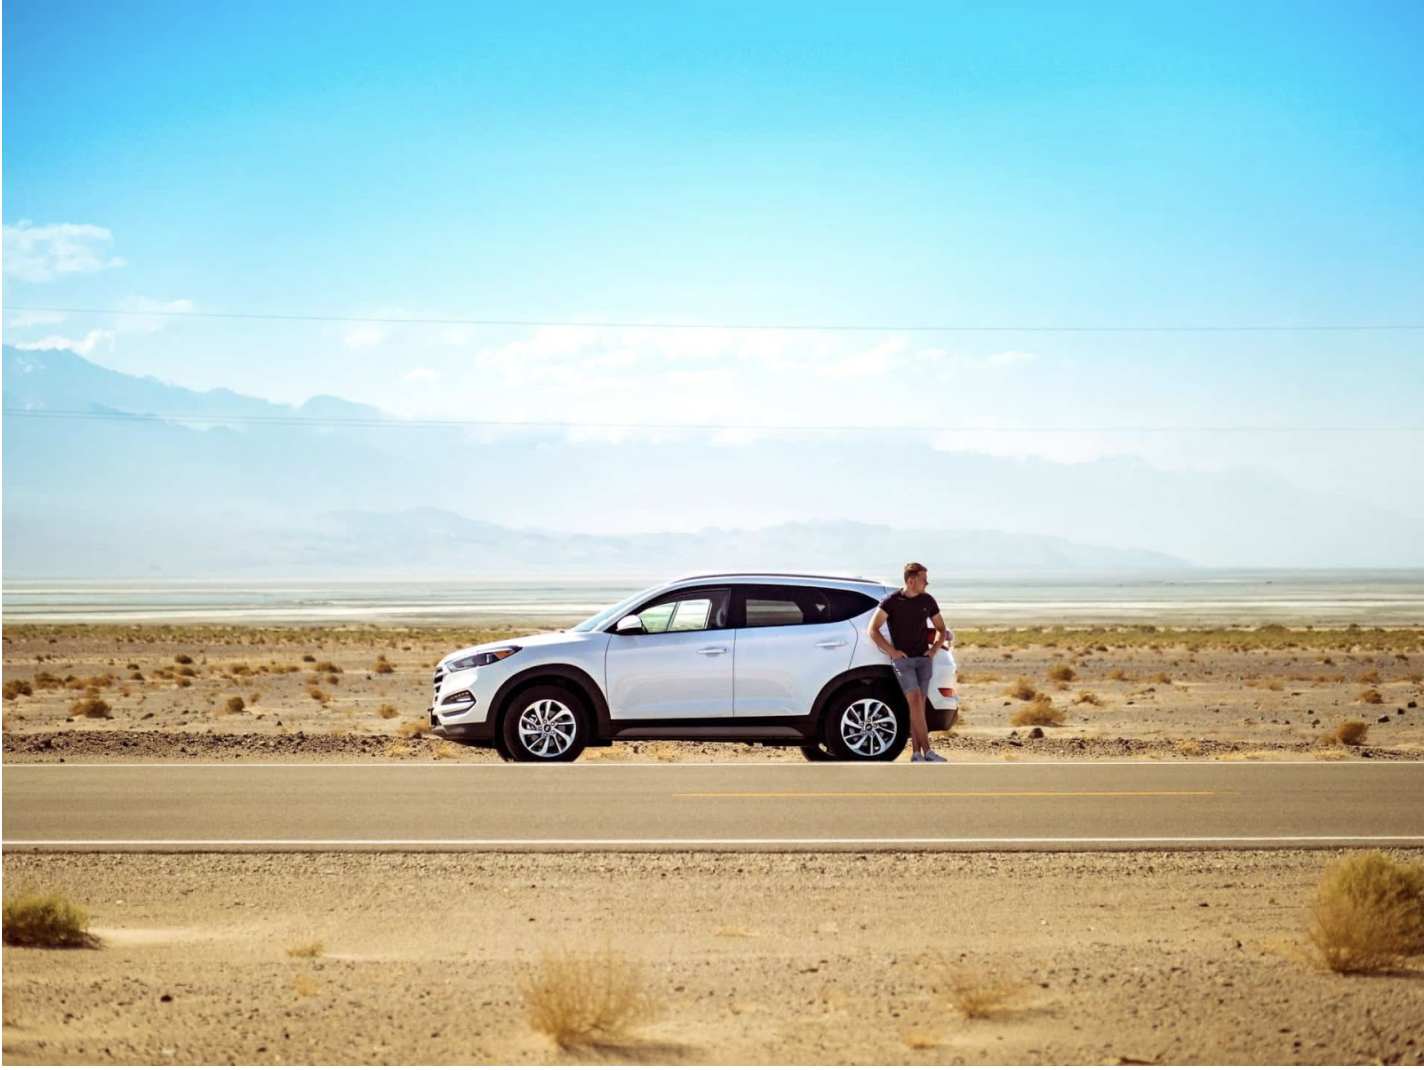 Man with broken down car on side of road with blue sky in background